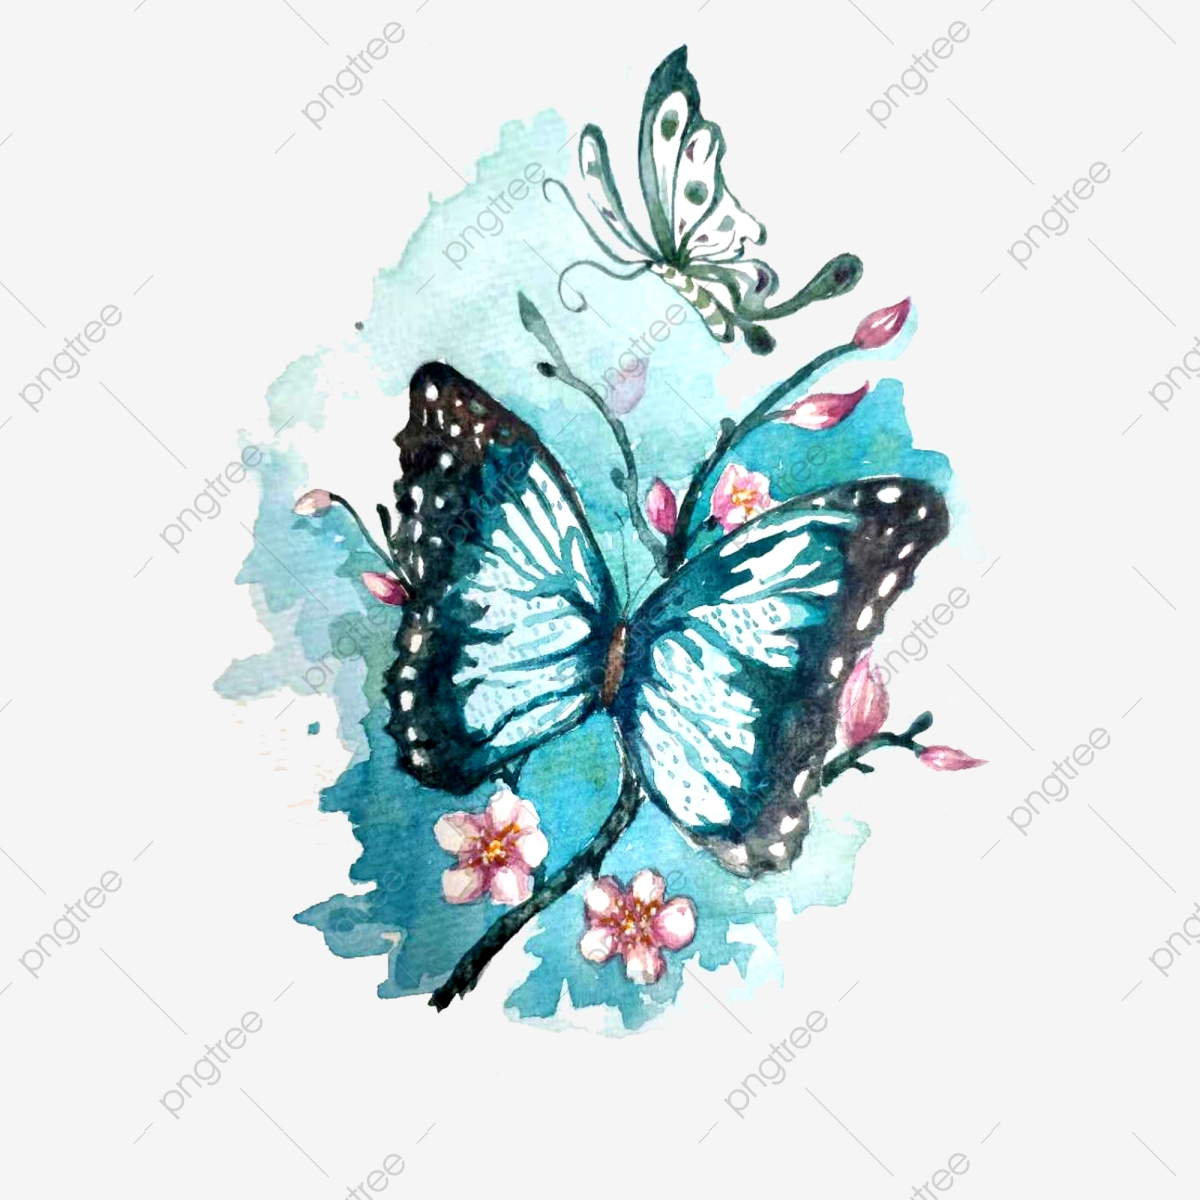 Sakura Butterfly Blue Aesthetic Decoration Png Pig Year Watercolor Safflower Png Transparent Clipart Image And Psd File For Free Download